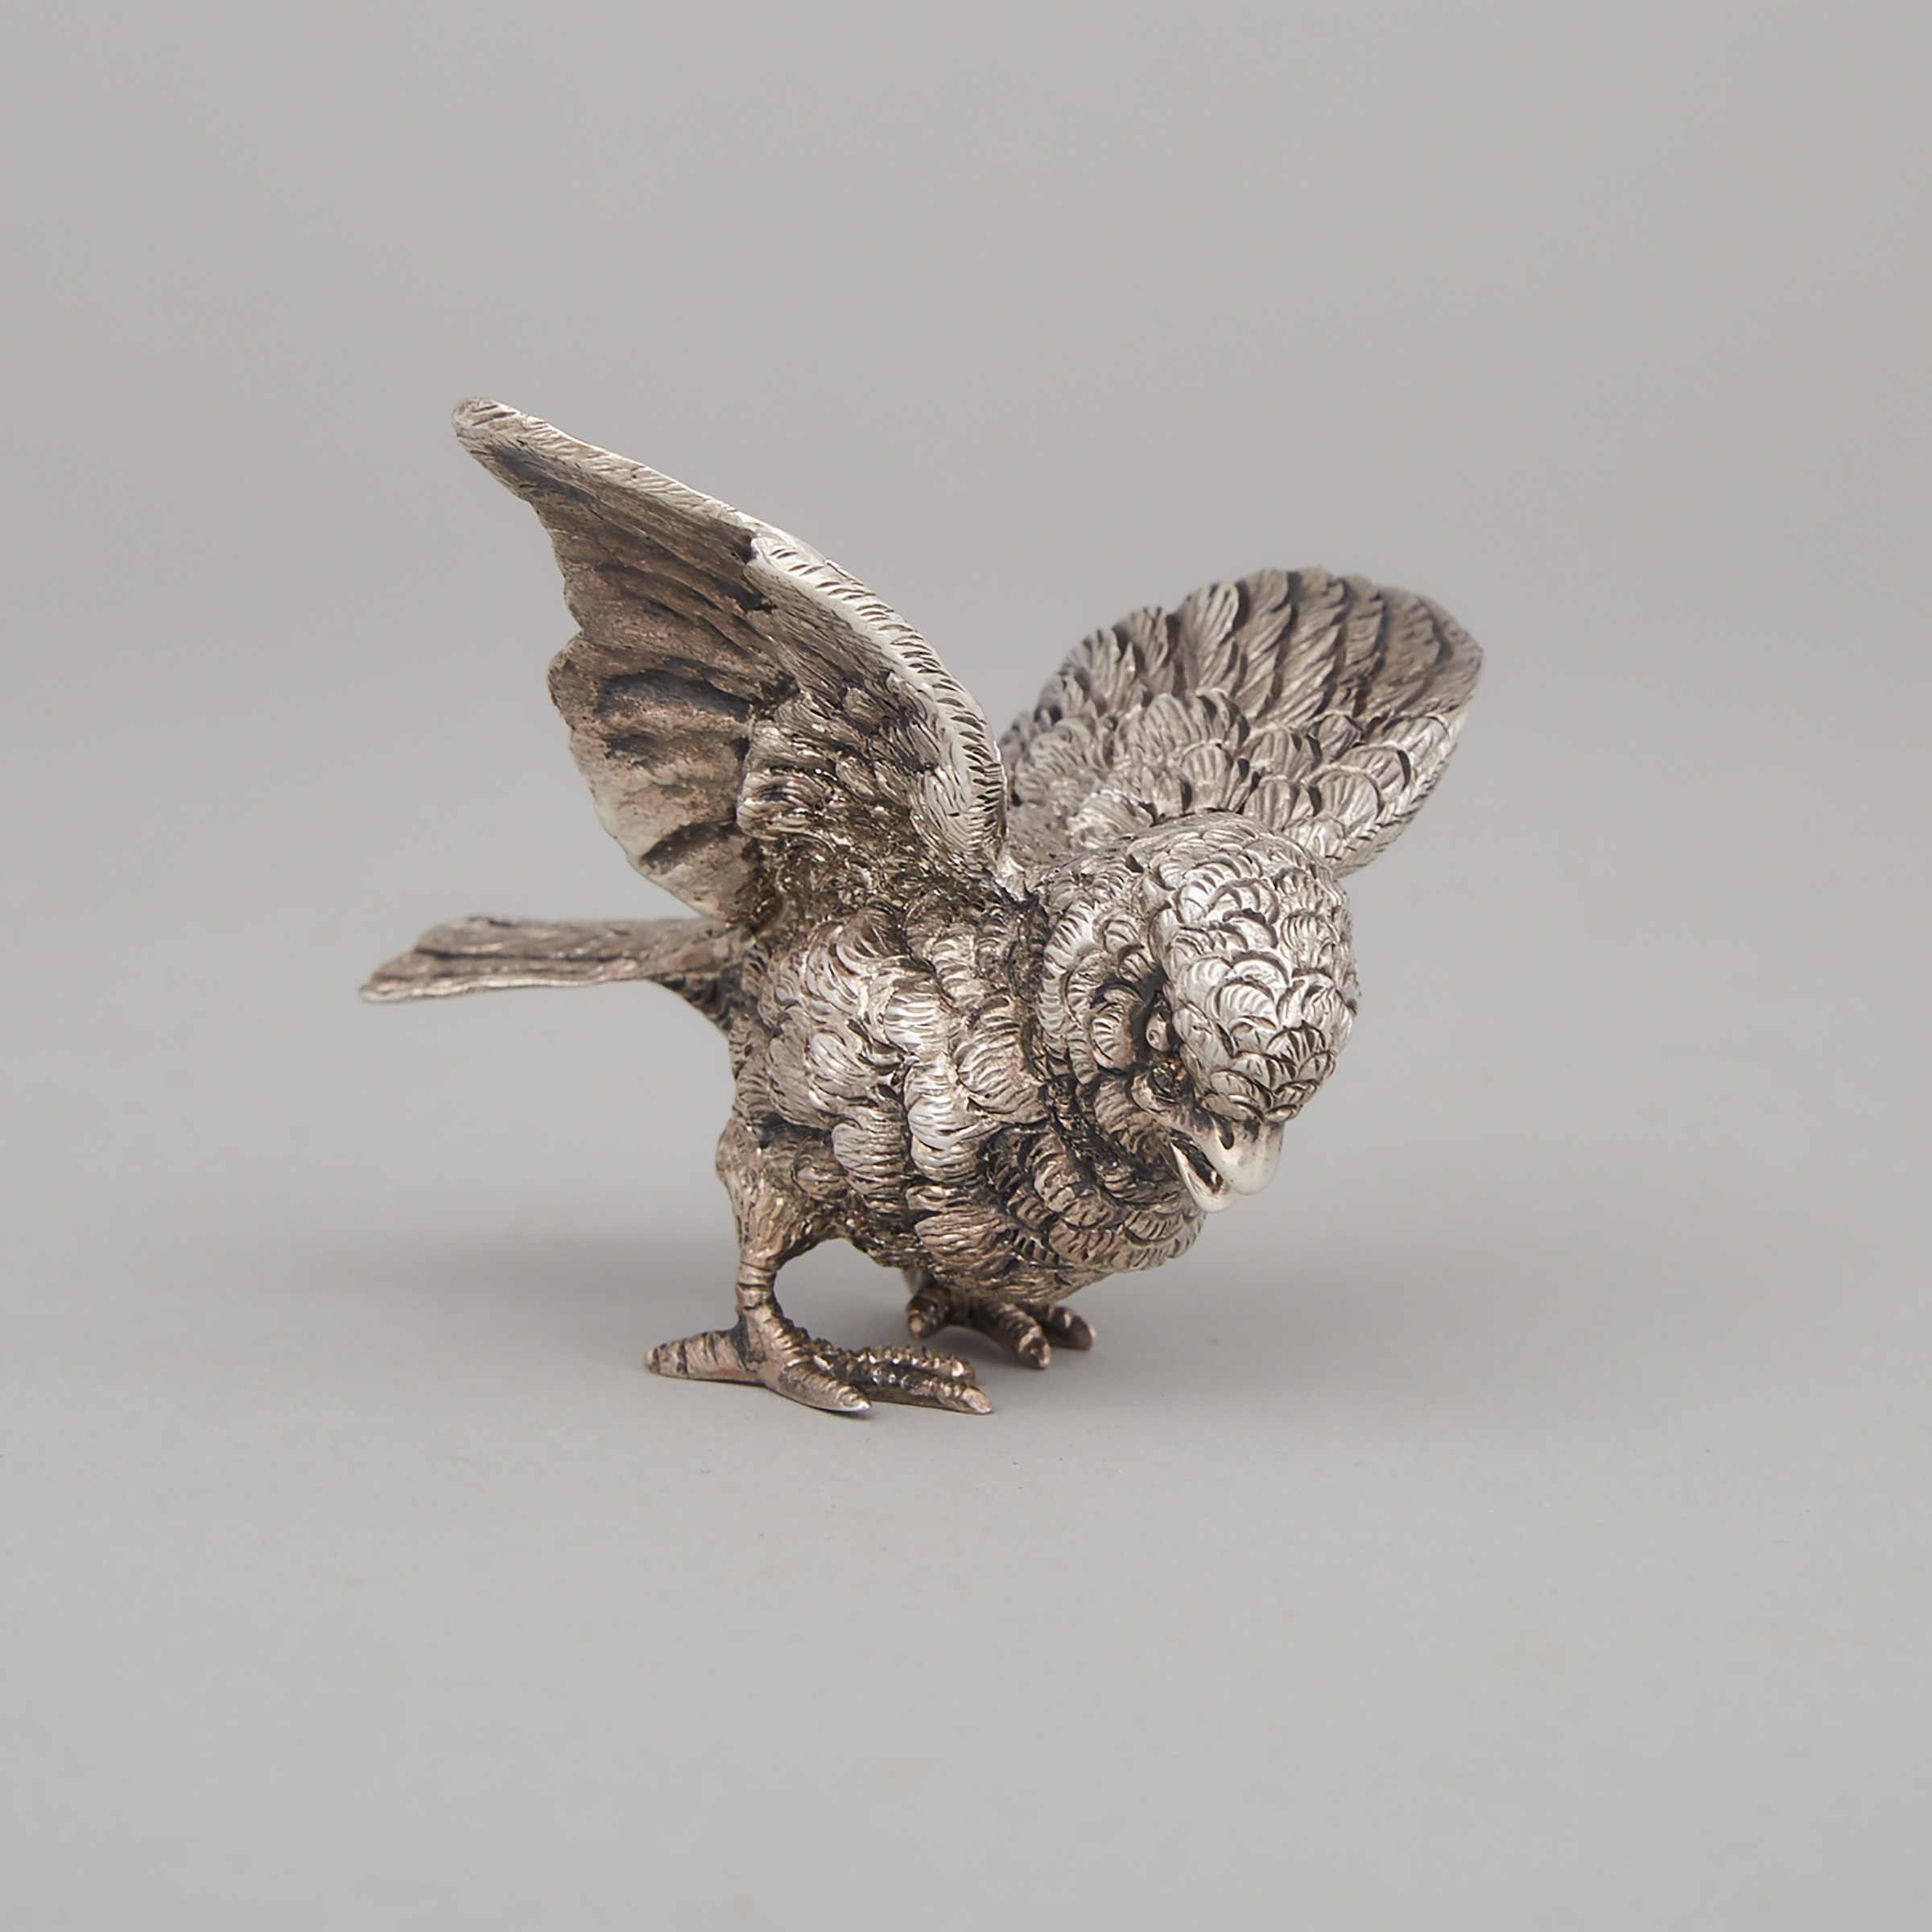 English Silver Model of a Sparrow, Francis Higgins & Sons Ltd., London, 1936